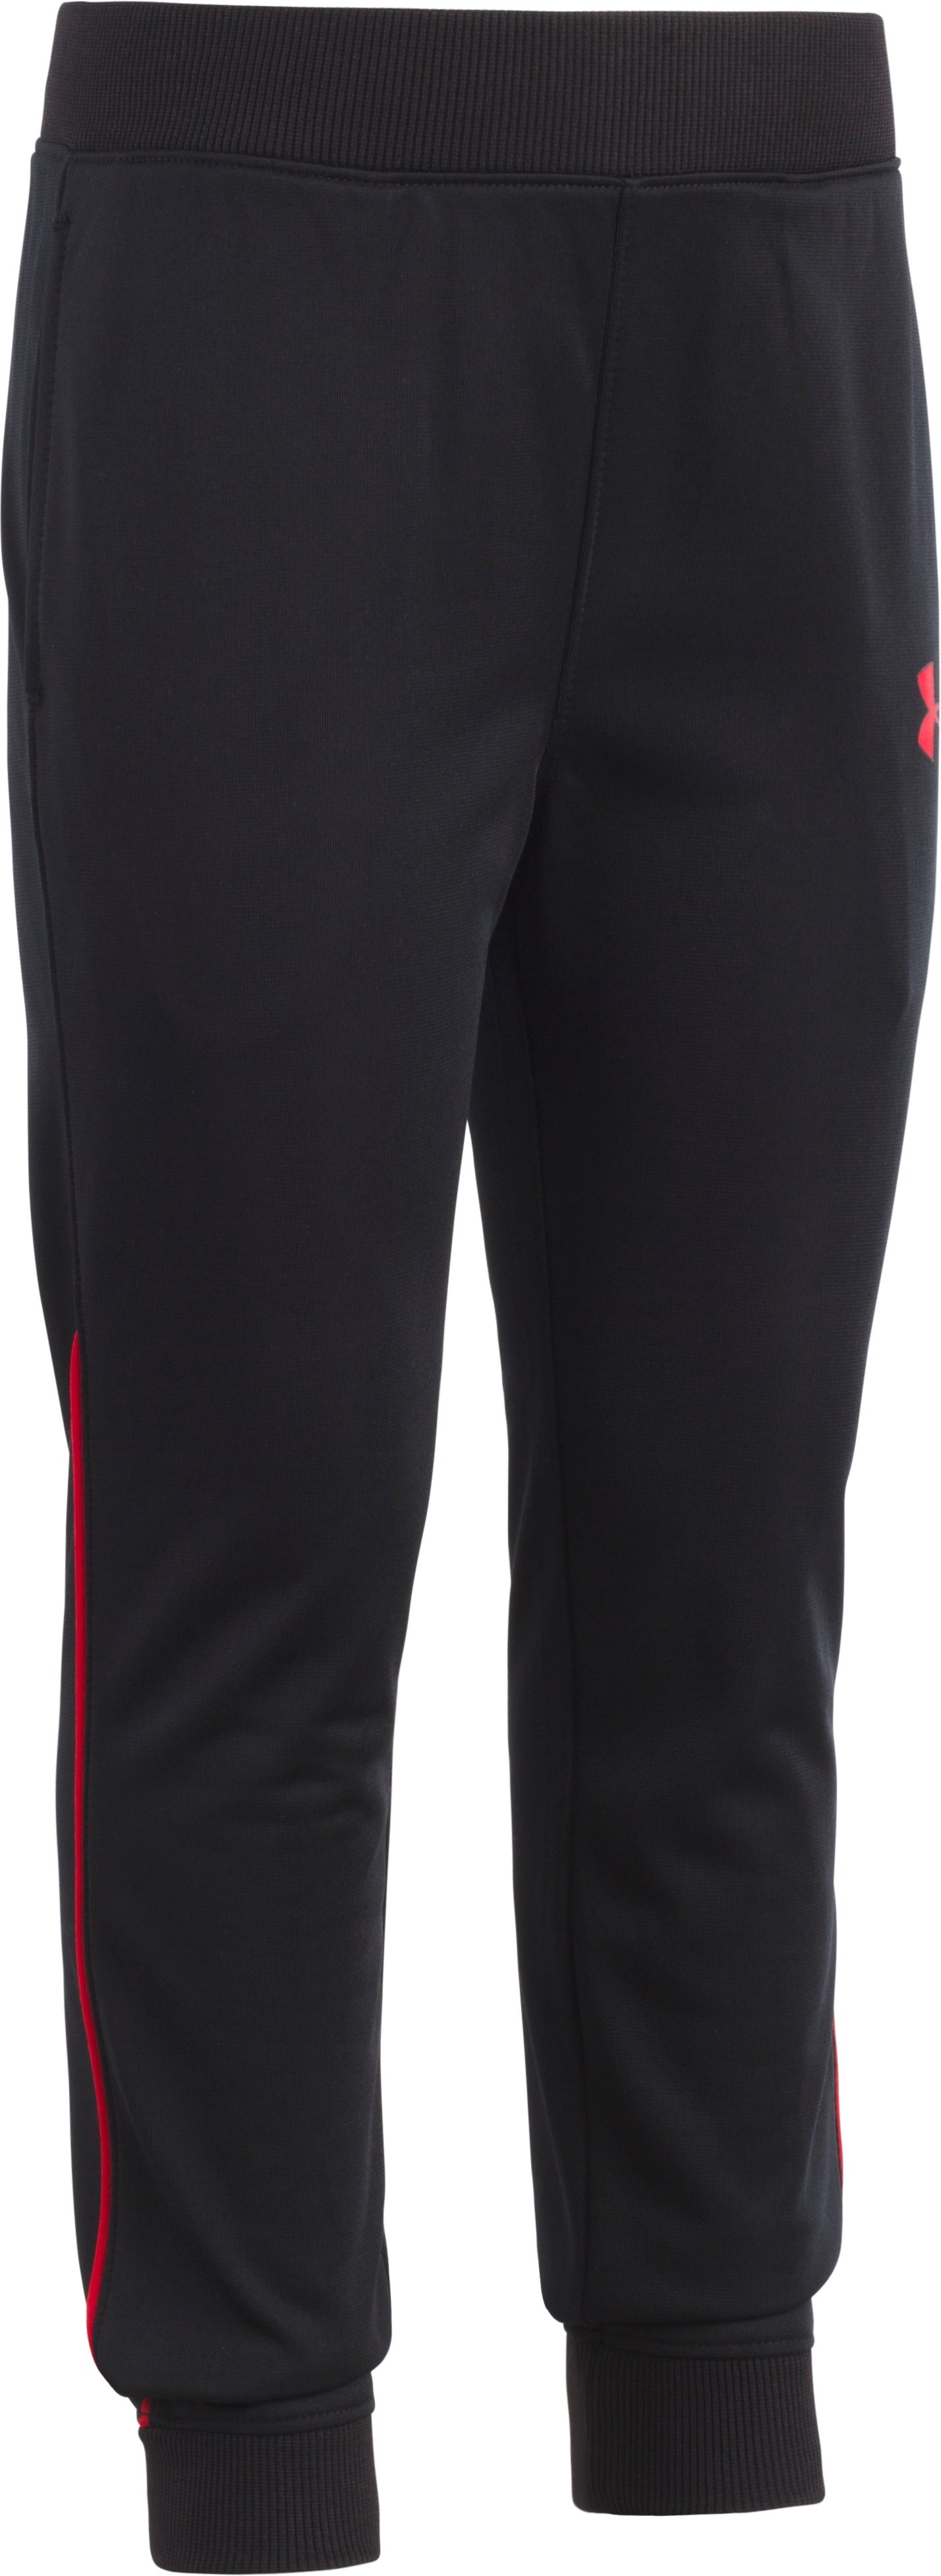 Boys' Toddler UA Pennant Tapered Pants, Black